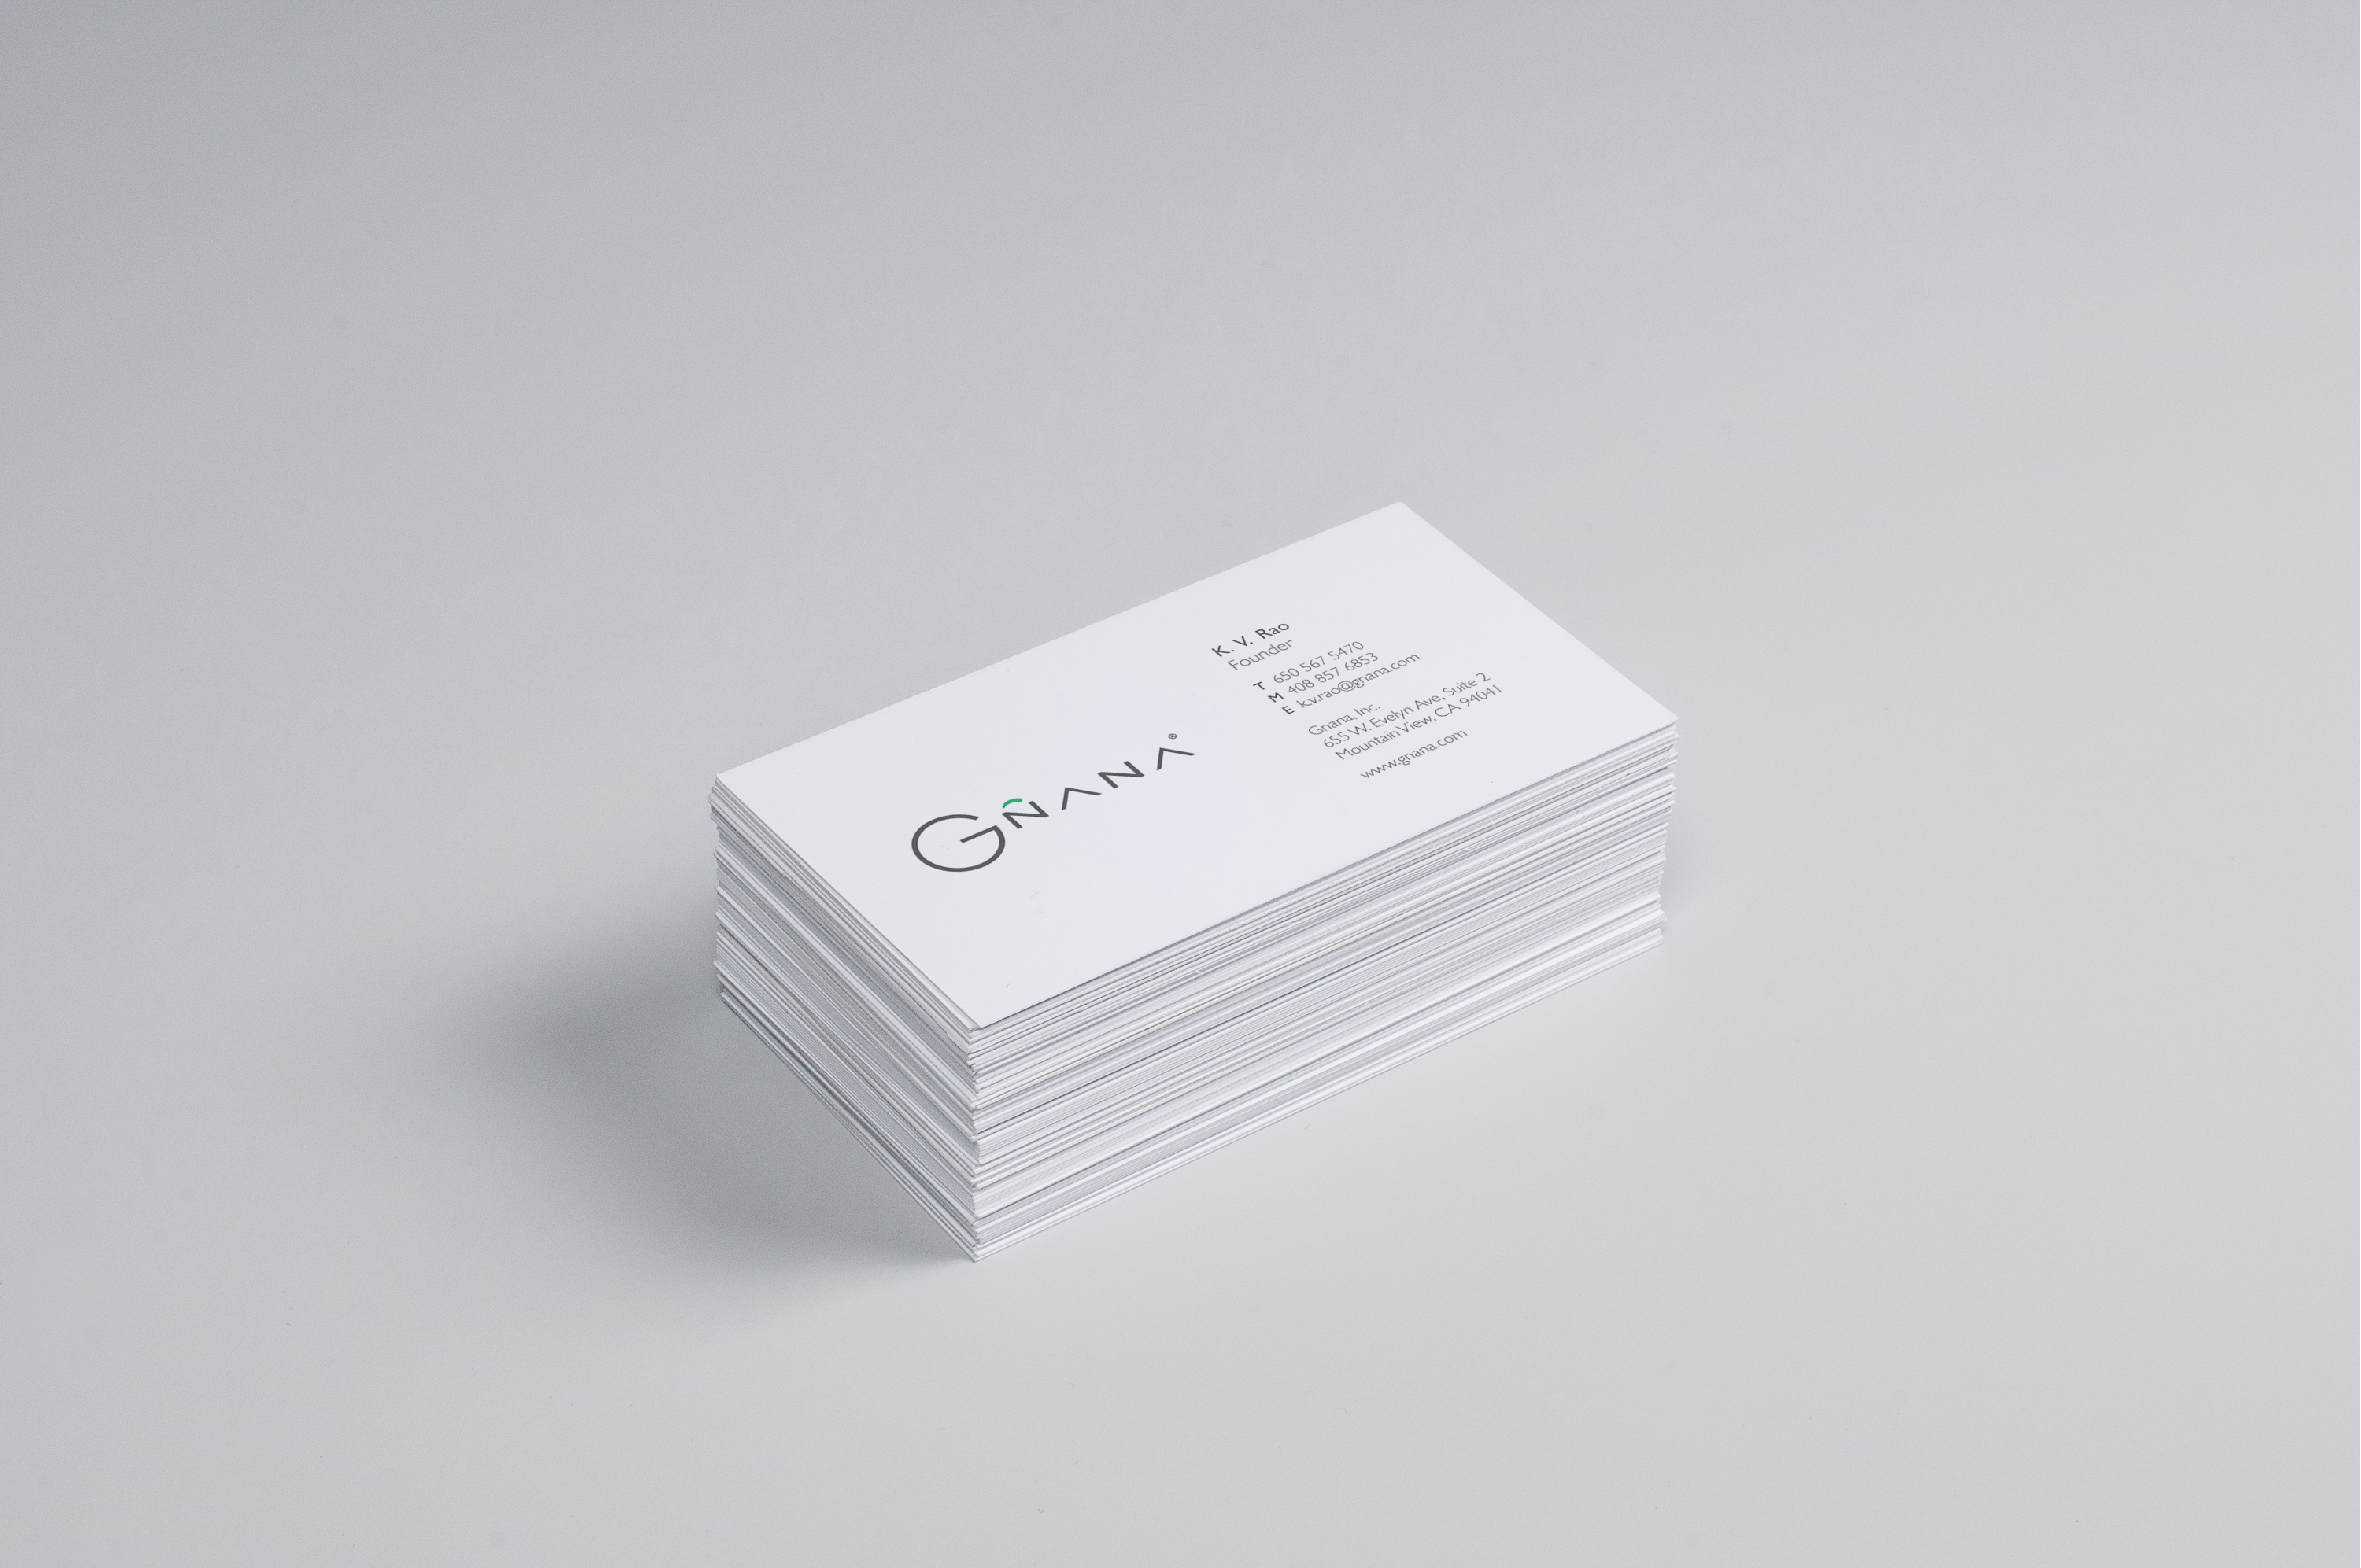 Dribbble - Business-Card-Mock-Up.4.png by Sherzod Max